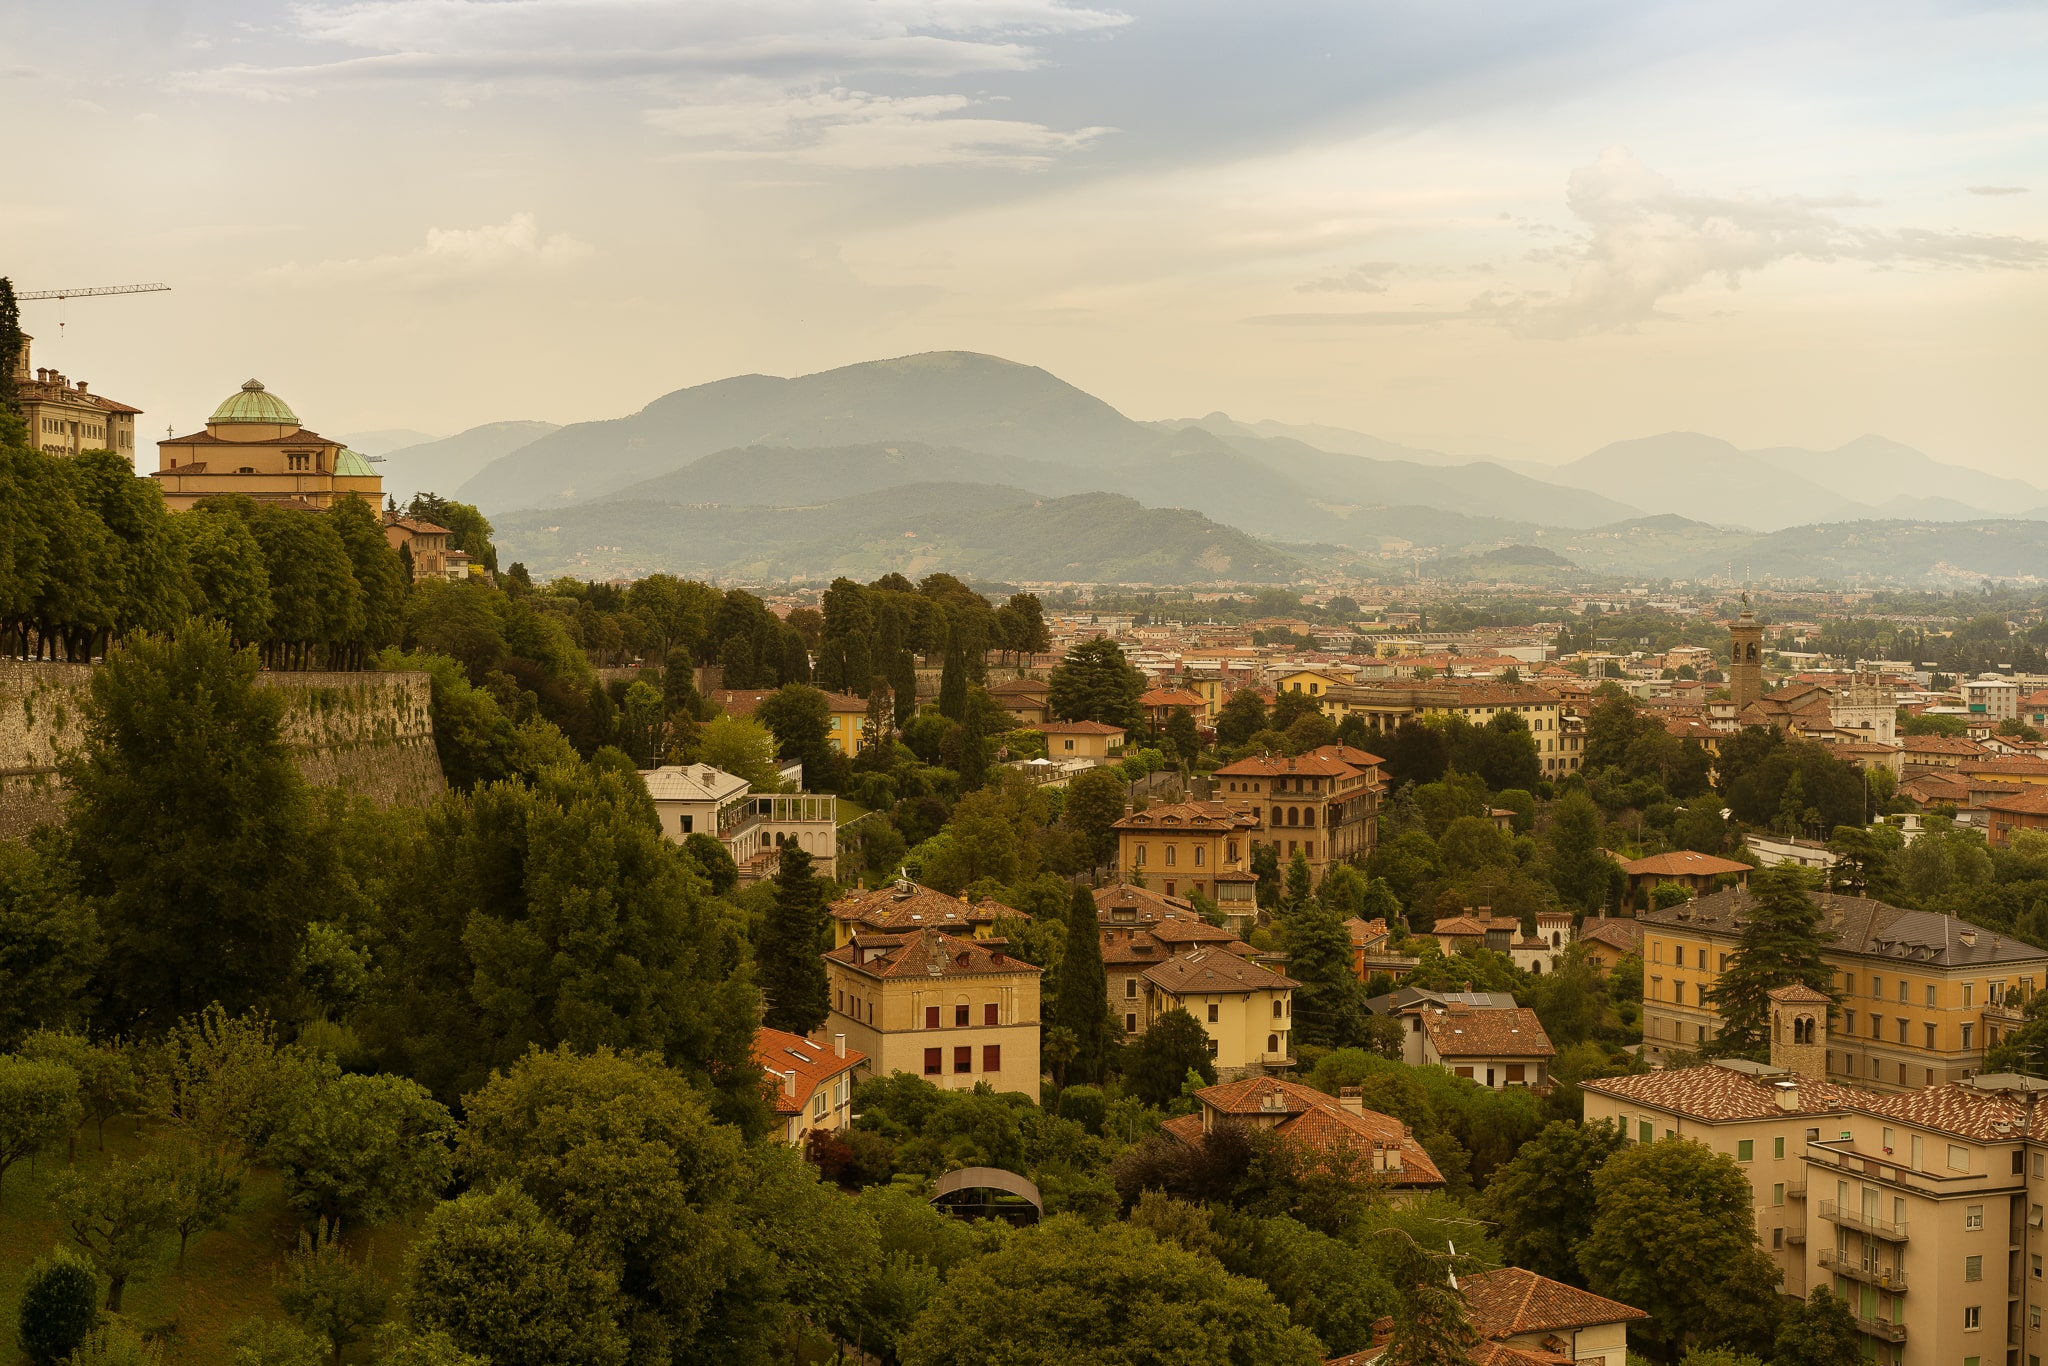 Where to stay in Italy if you're looking for a hidden gem? Bergamo